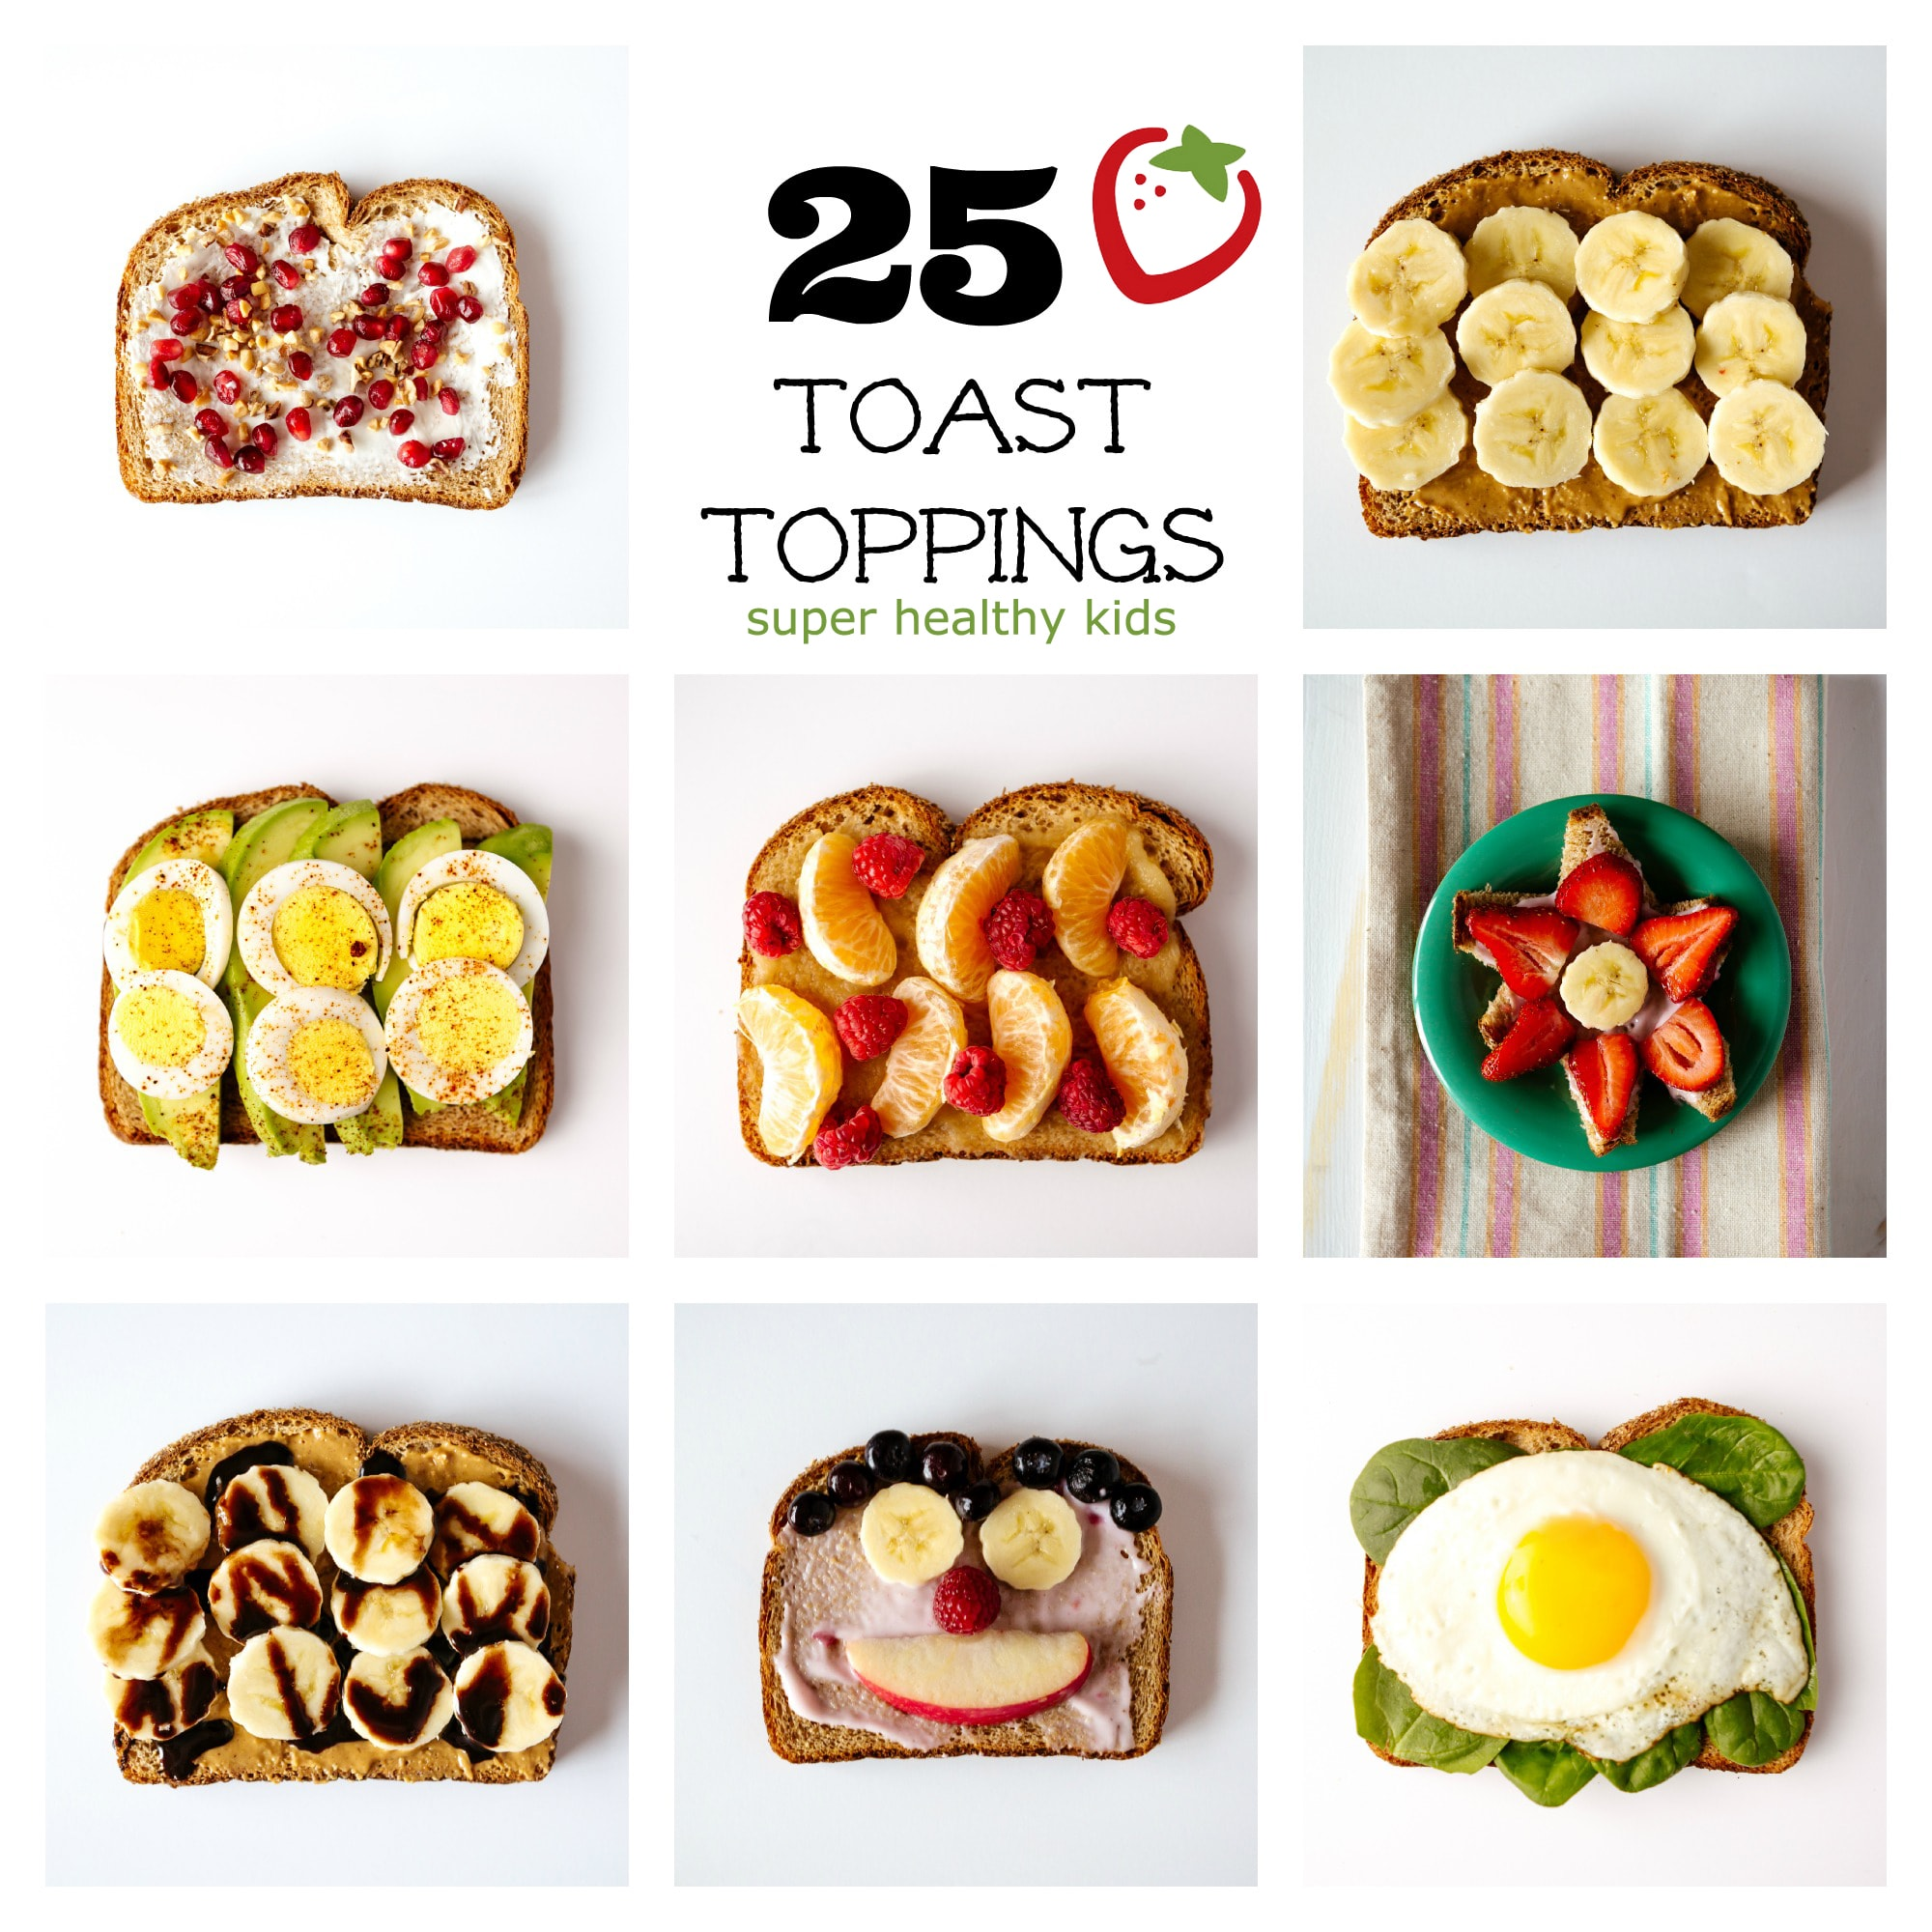 Toast Toppings 25 Ideas For A Healthy Breakfast Healthy Ideas For Kids